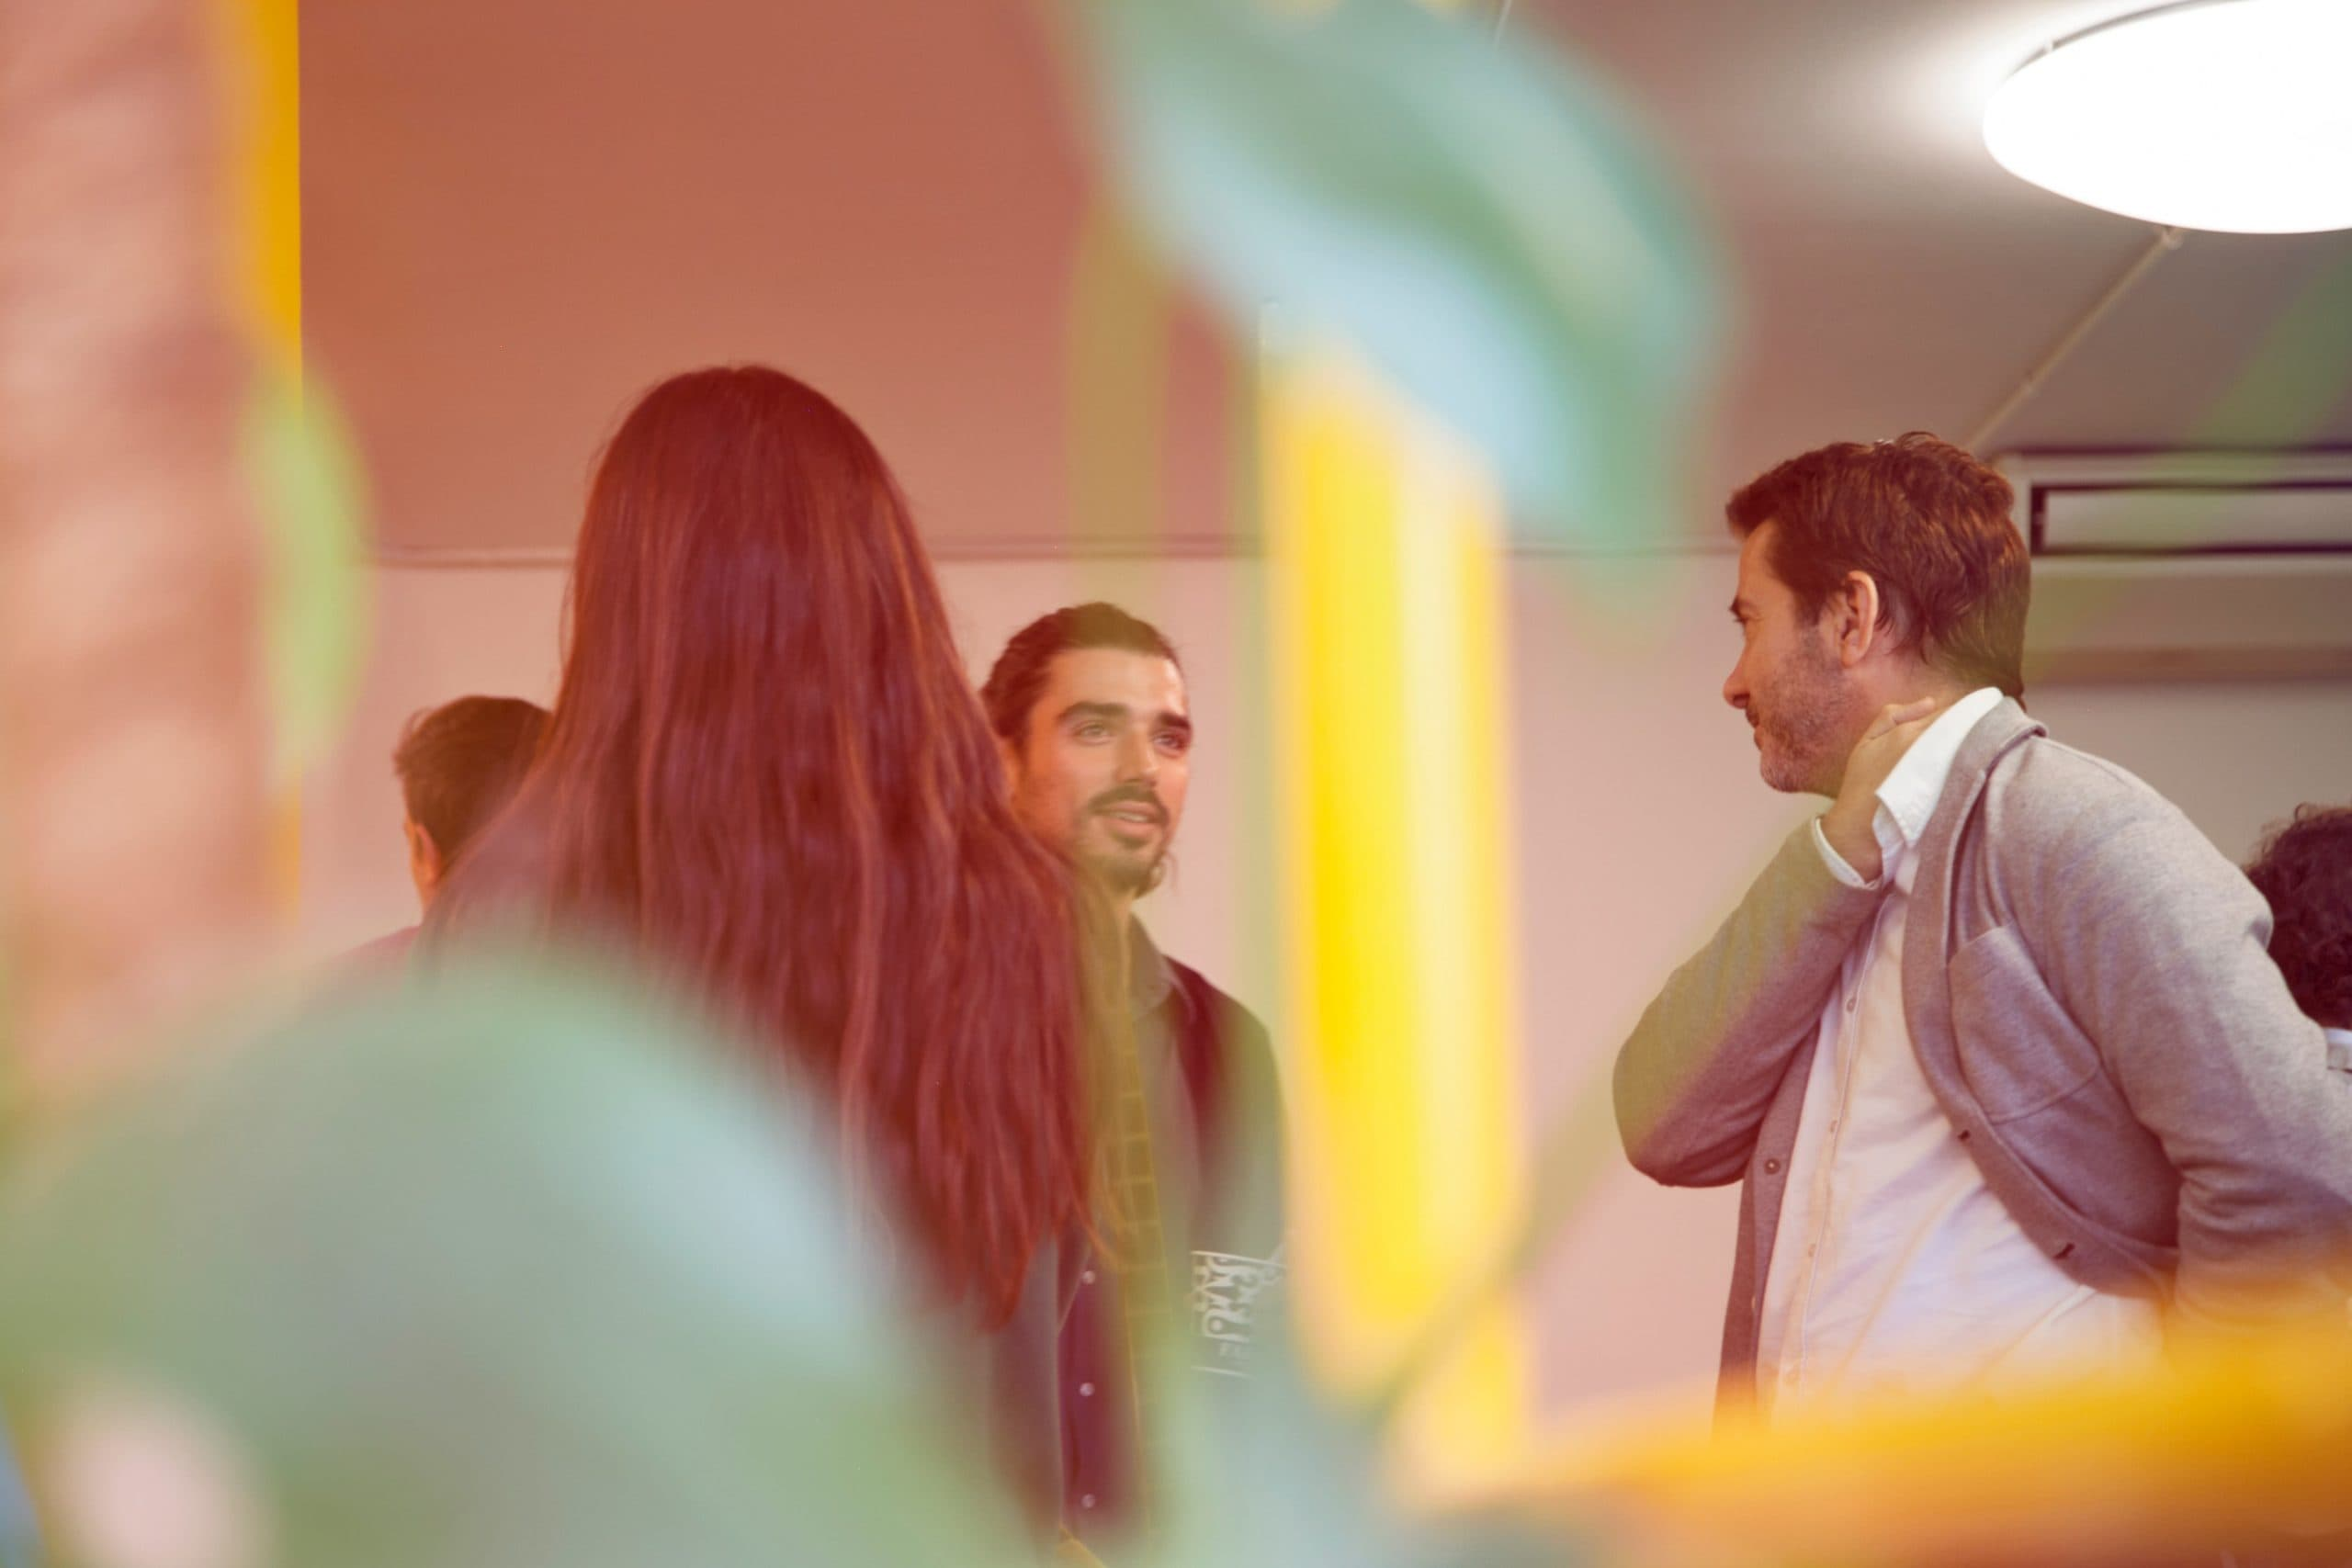 The Best Filmmaking Blogs in 2021 - An image of people at a networking event